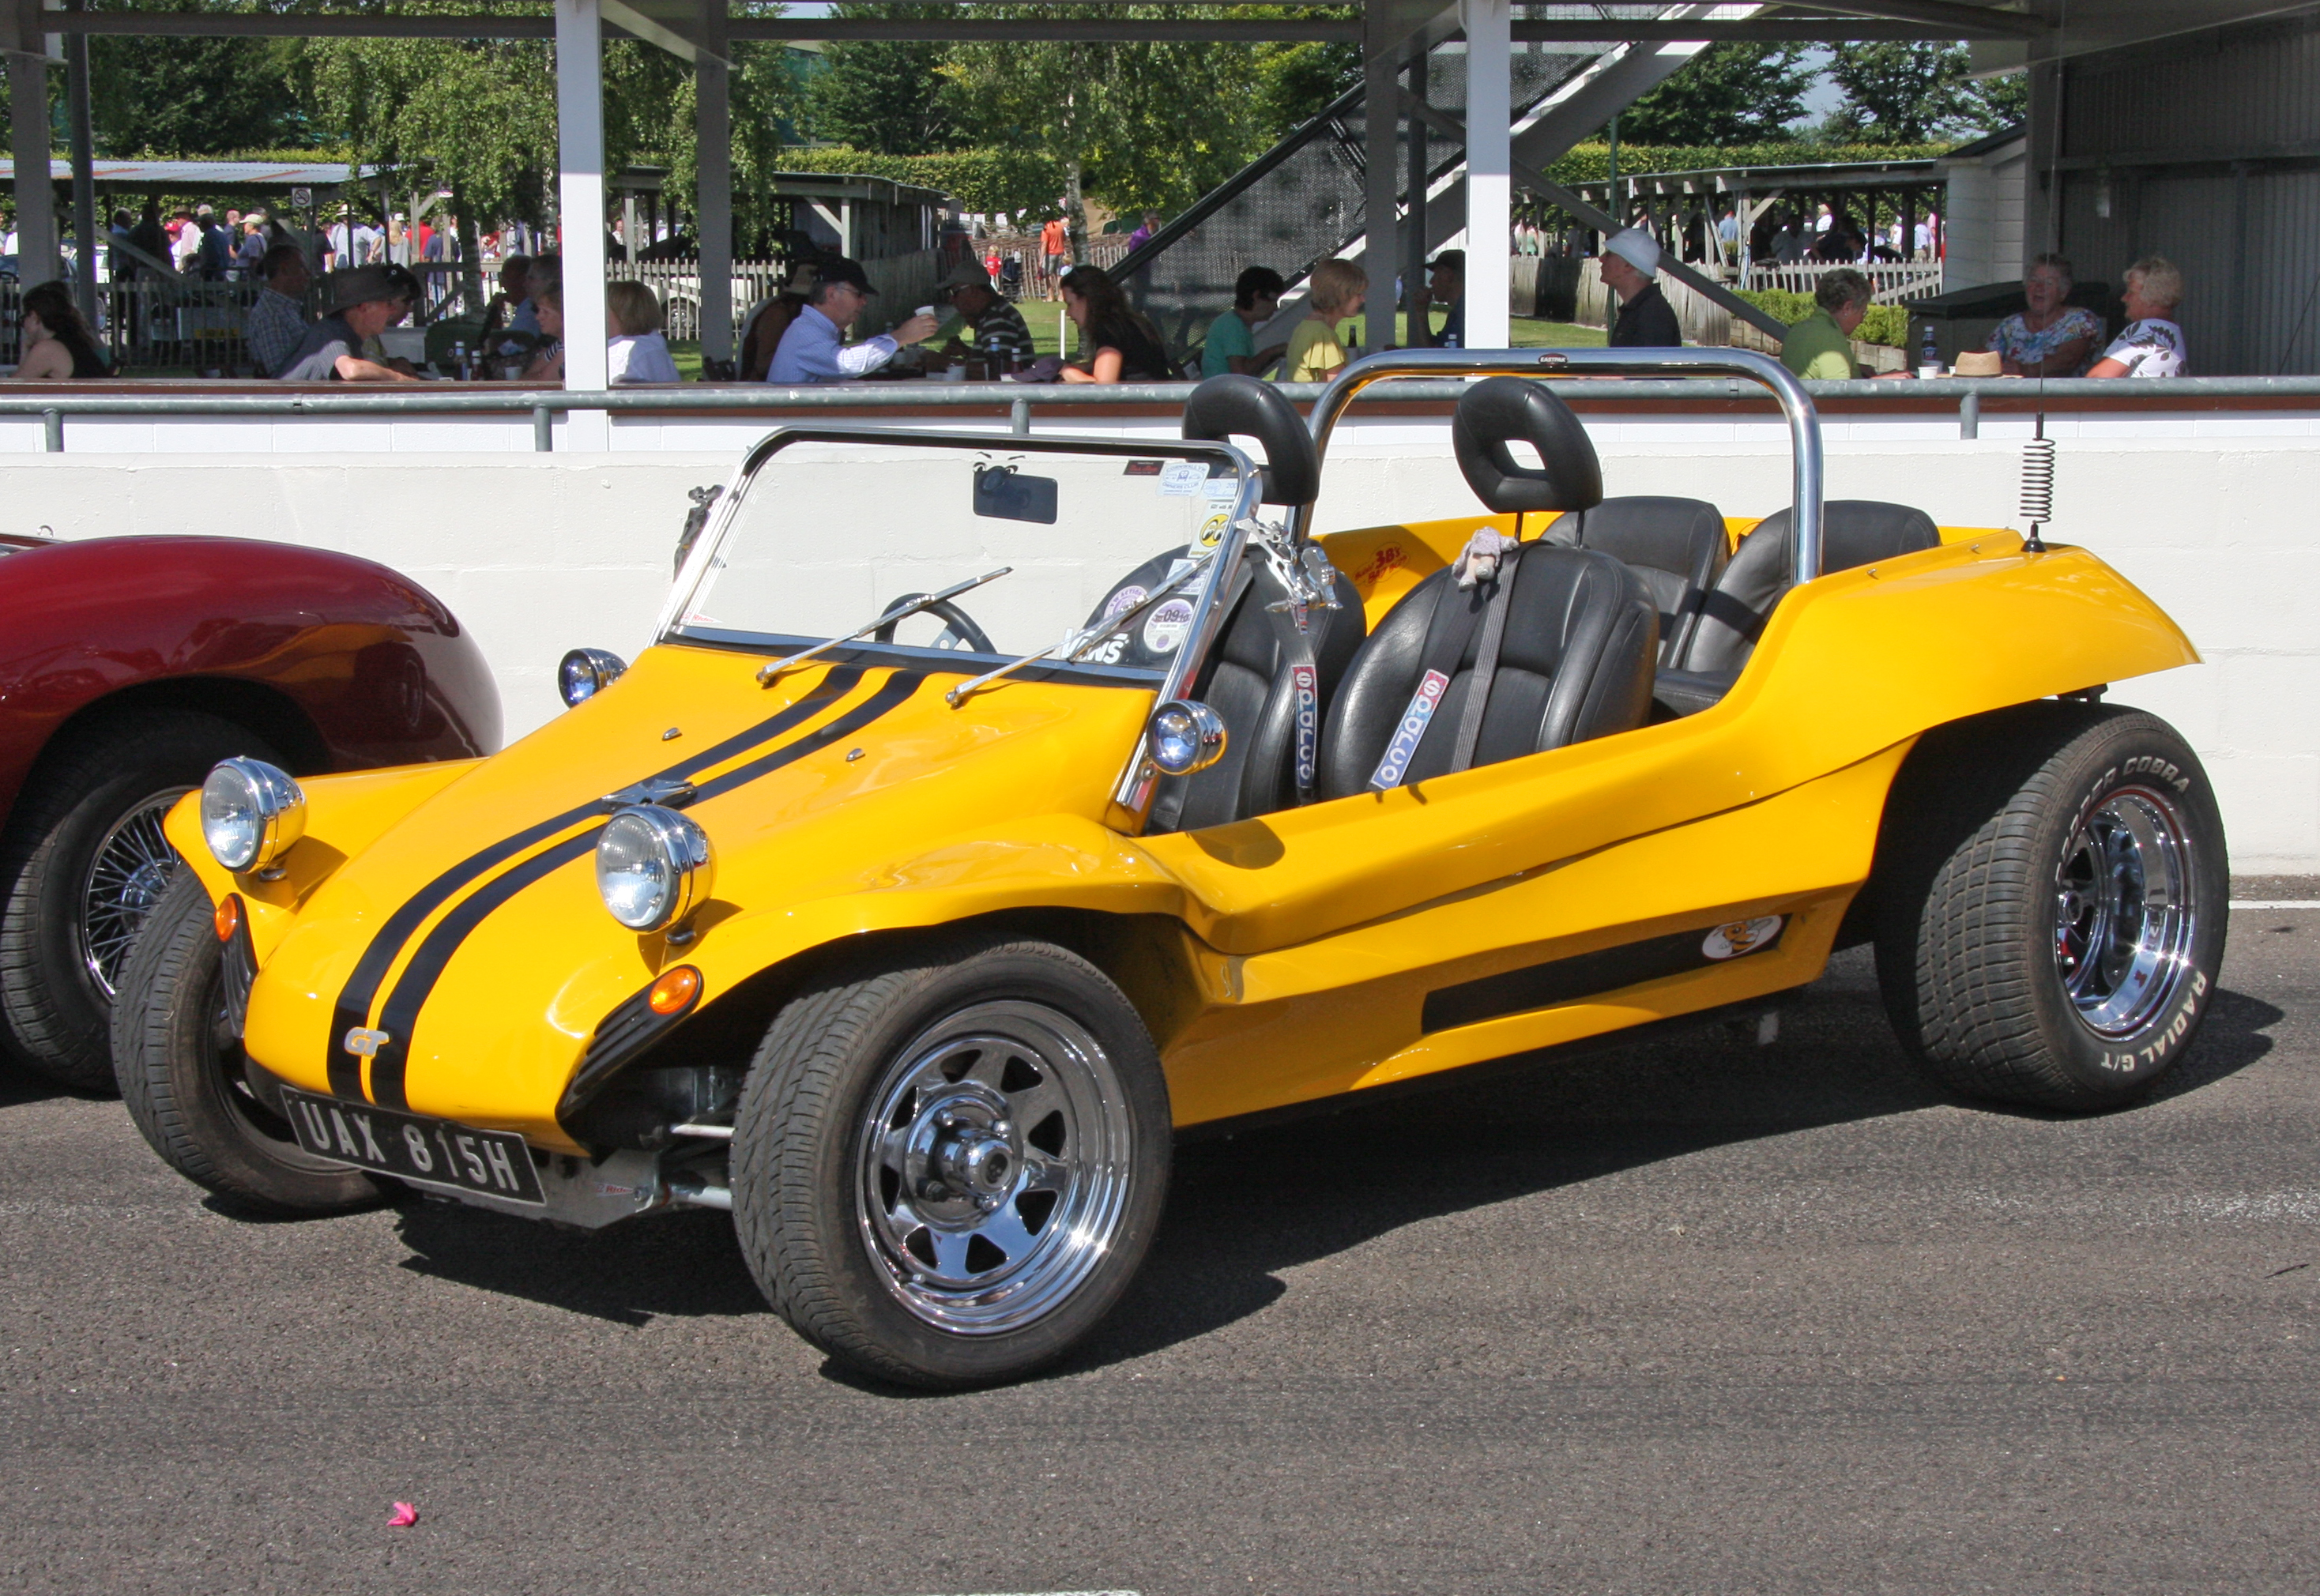 Shortened Cars >> File:Beach buggy - Flickr - exfordy.jpg